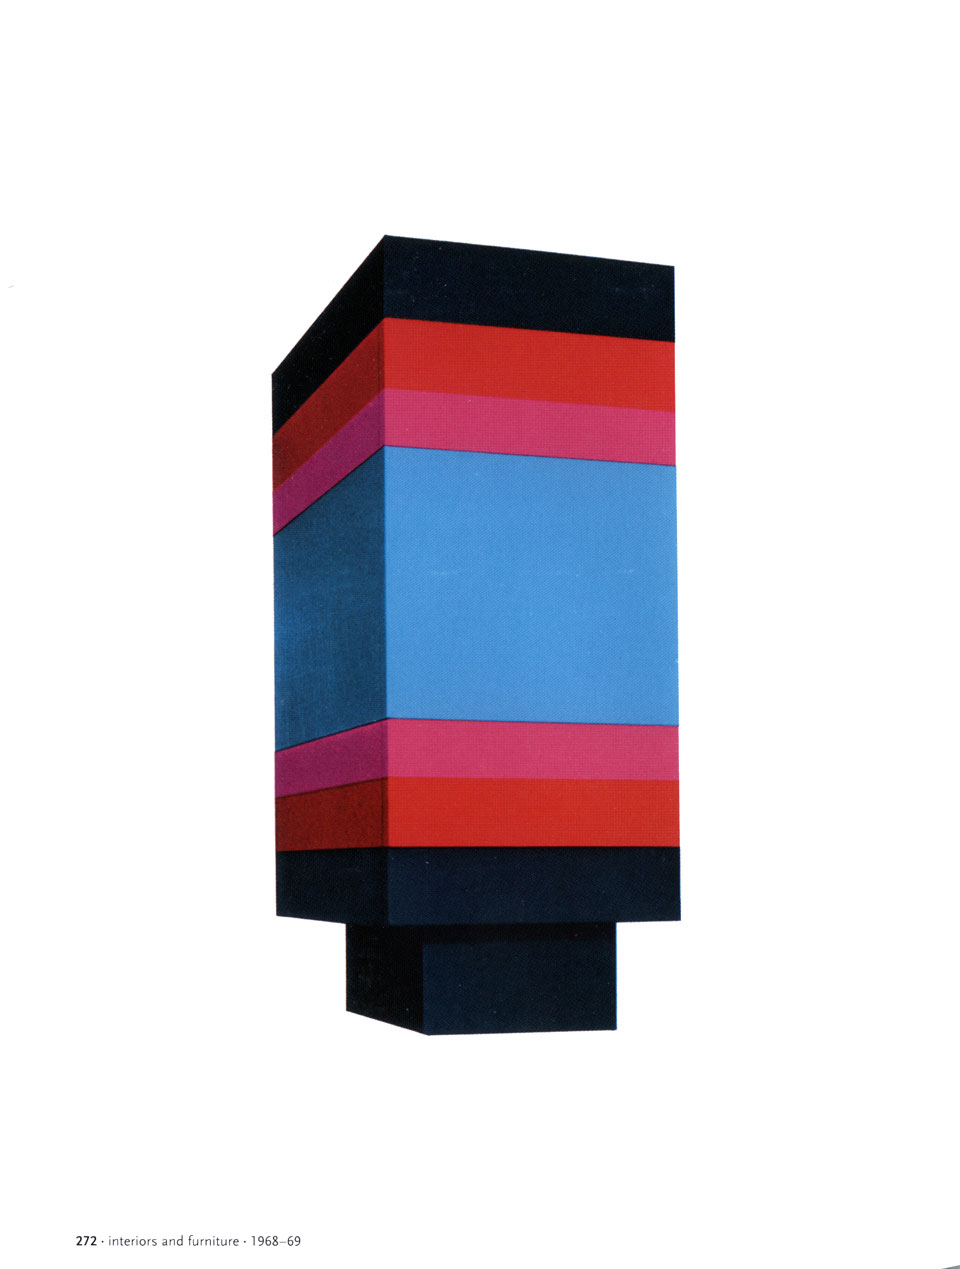 60s-Fluoro-Geologia-Psichedelica-Sottsass-001